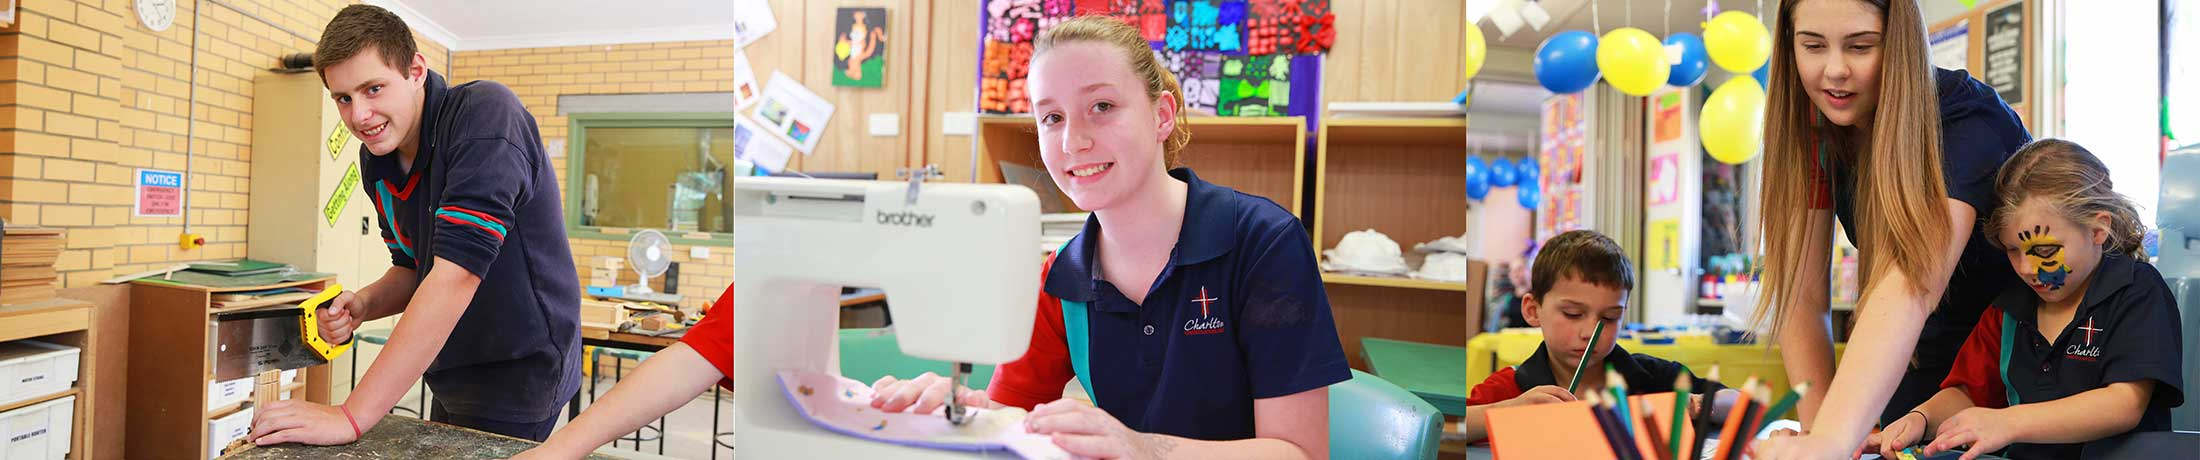 middle school curriculum and technology charlton christian college